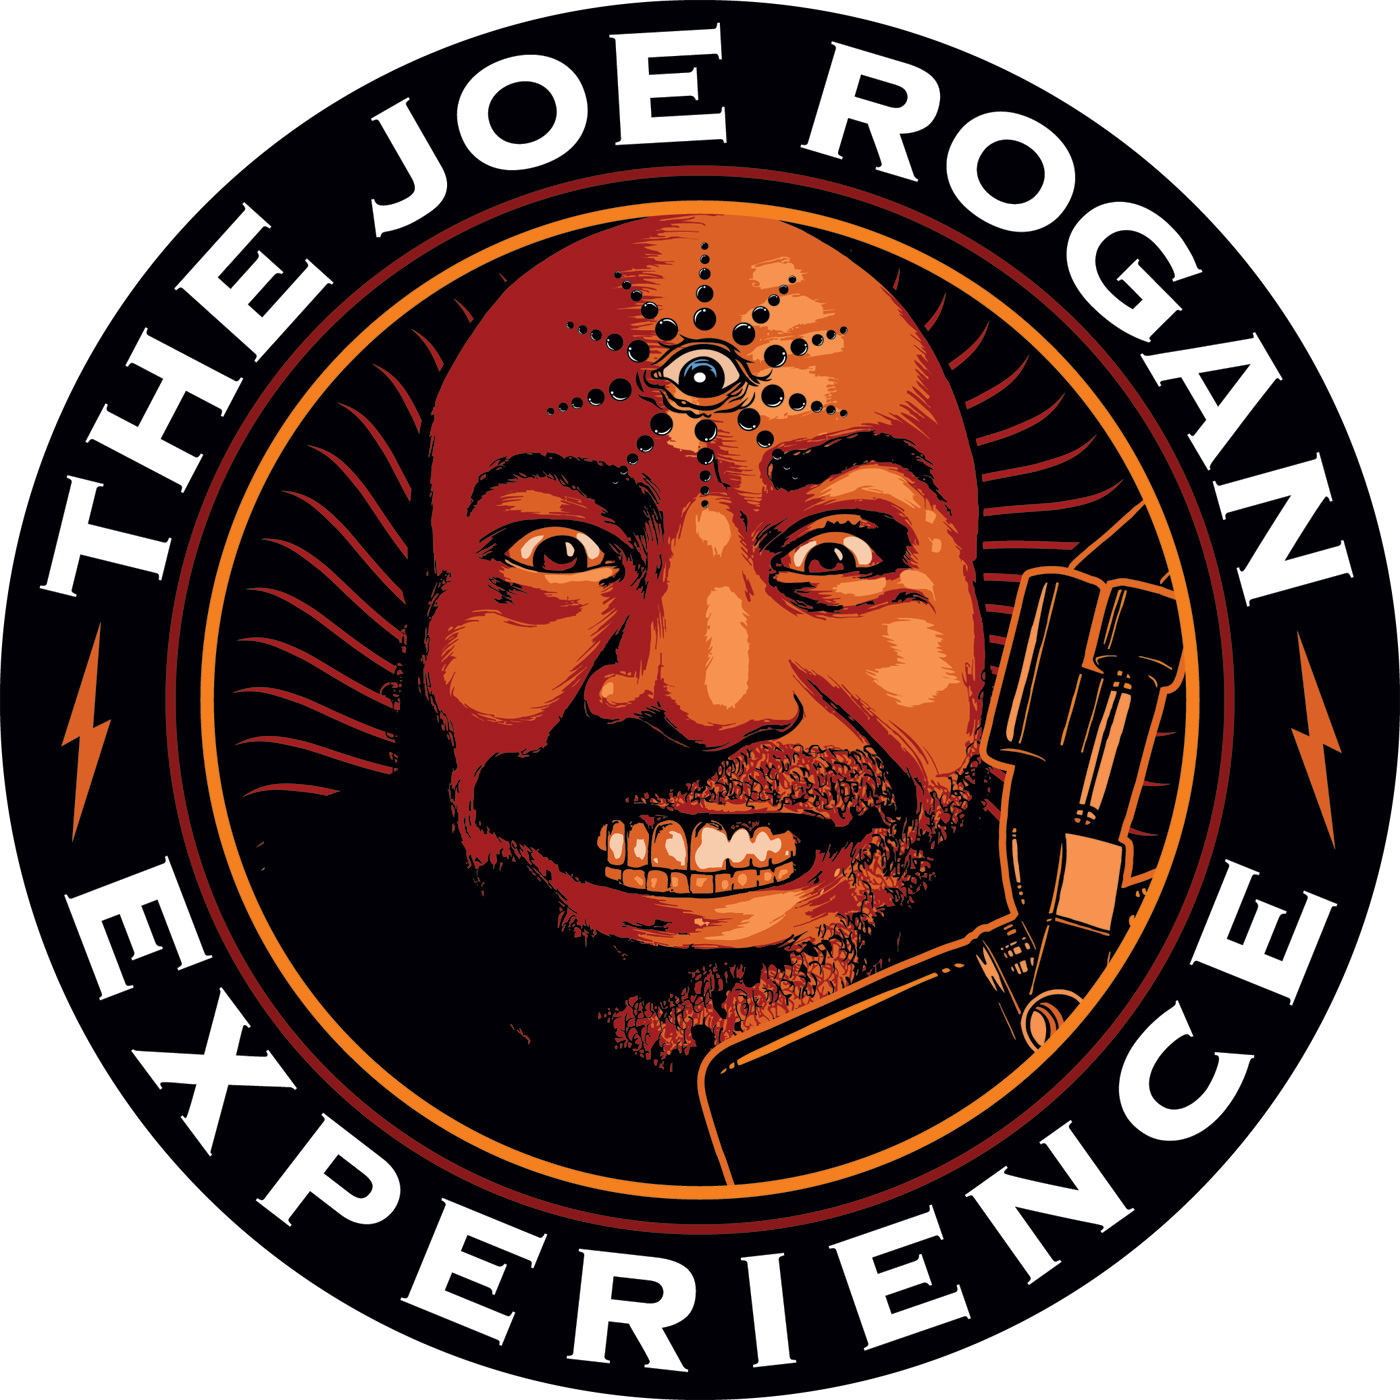 The Joe Rogan Experience PODCAST#49 - Duncan Trussell, Brian Redban